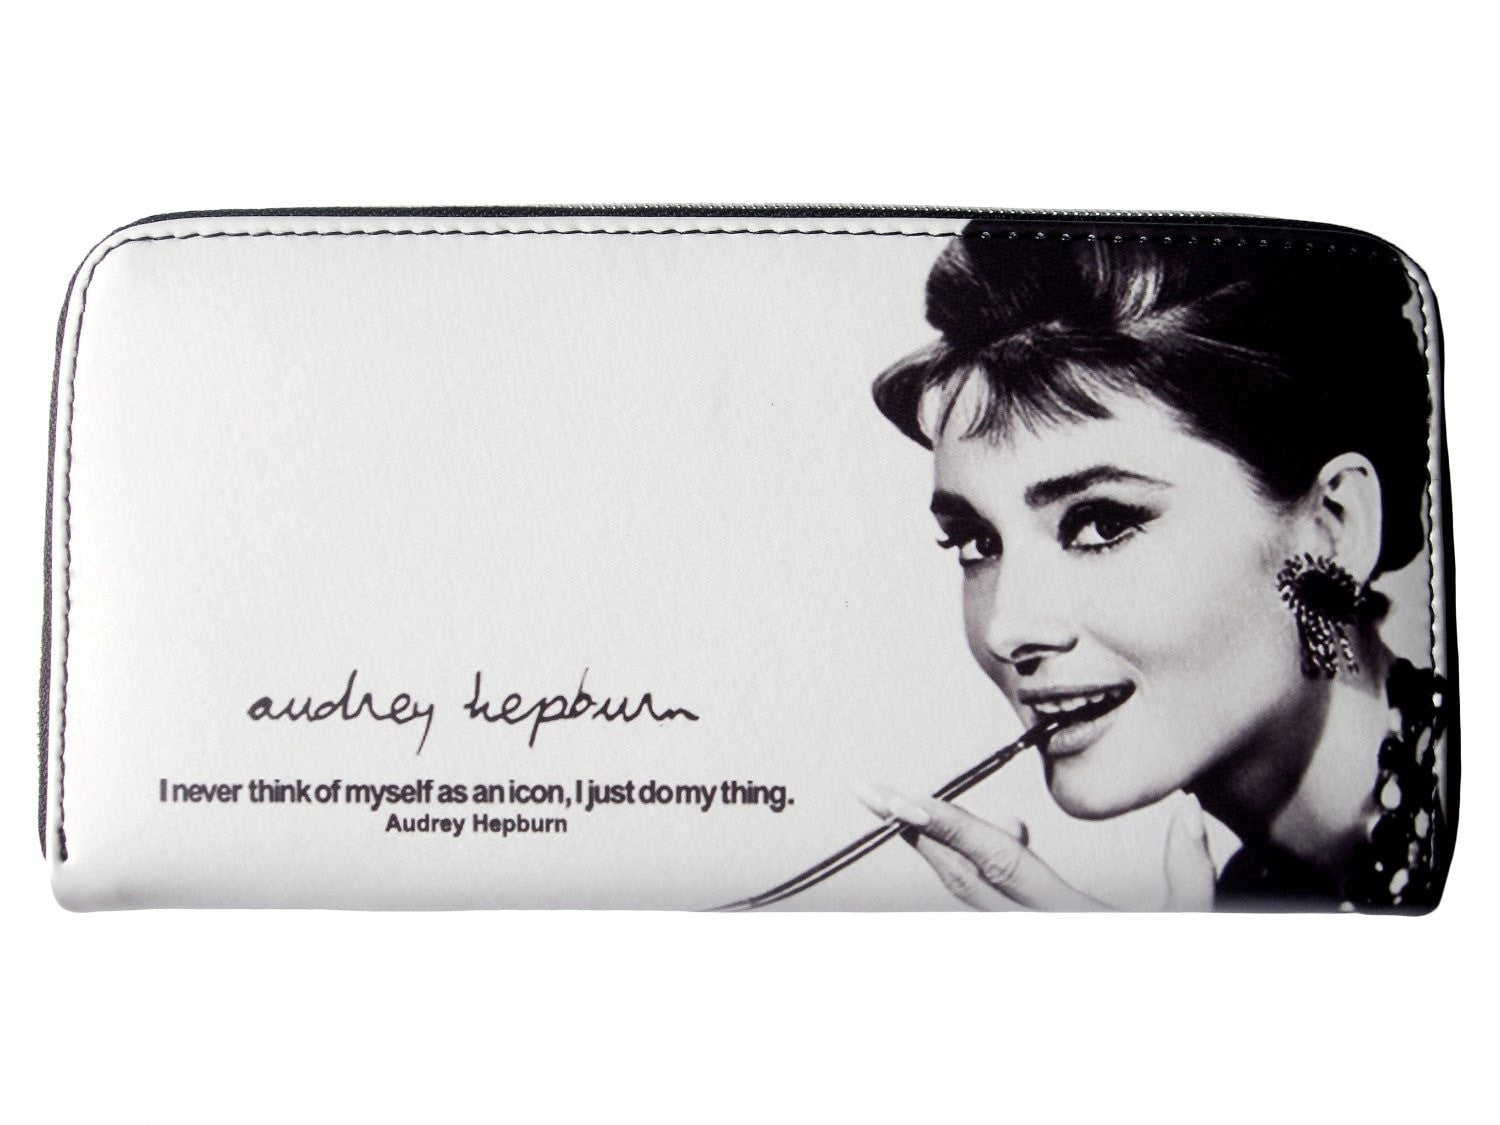 Audrey Hepburn Retro Cinema Actress Icon Signature White Wallet Bag